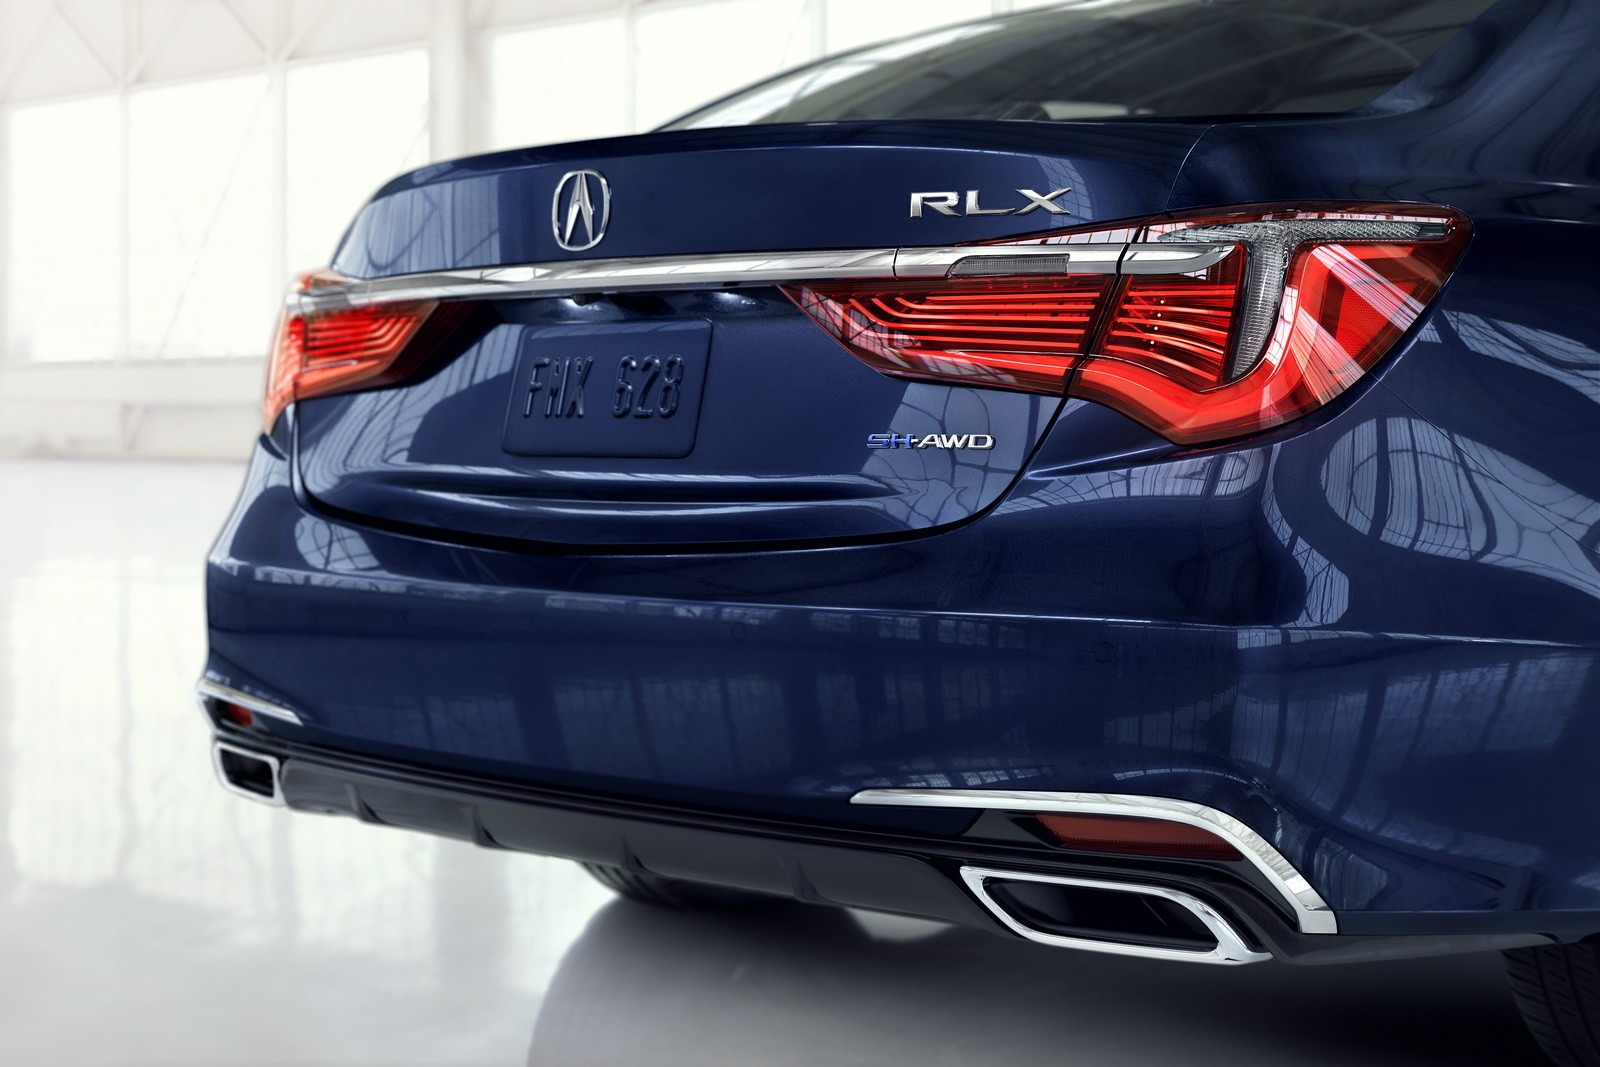 2018 Acura RLX Adds Fresh Styling, 10-Speed Automatic ...